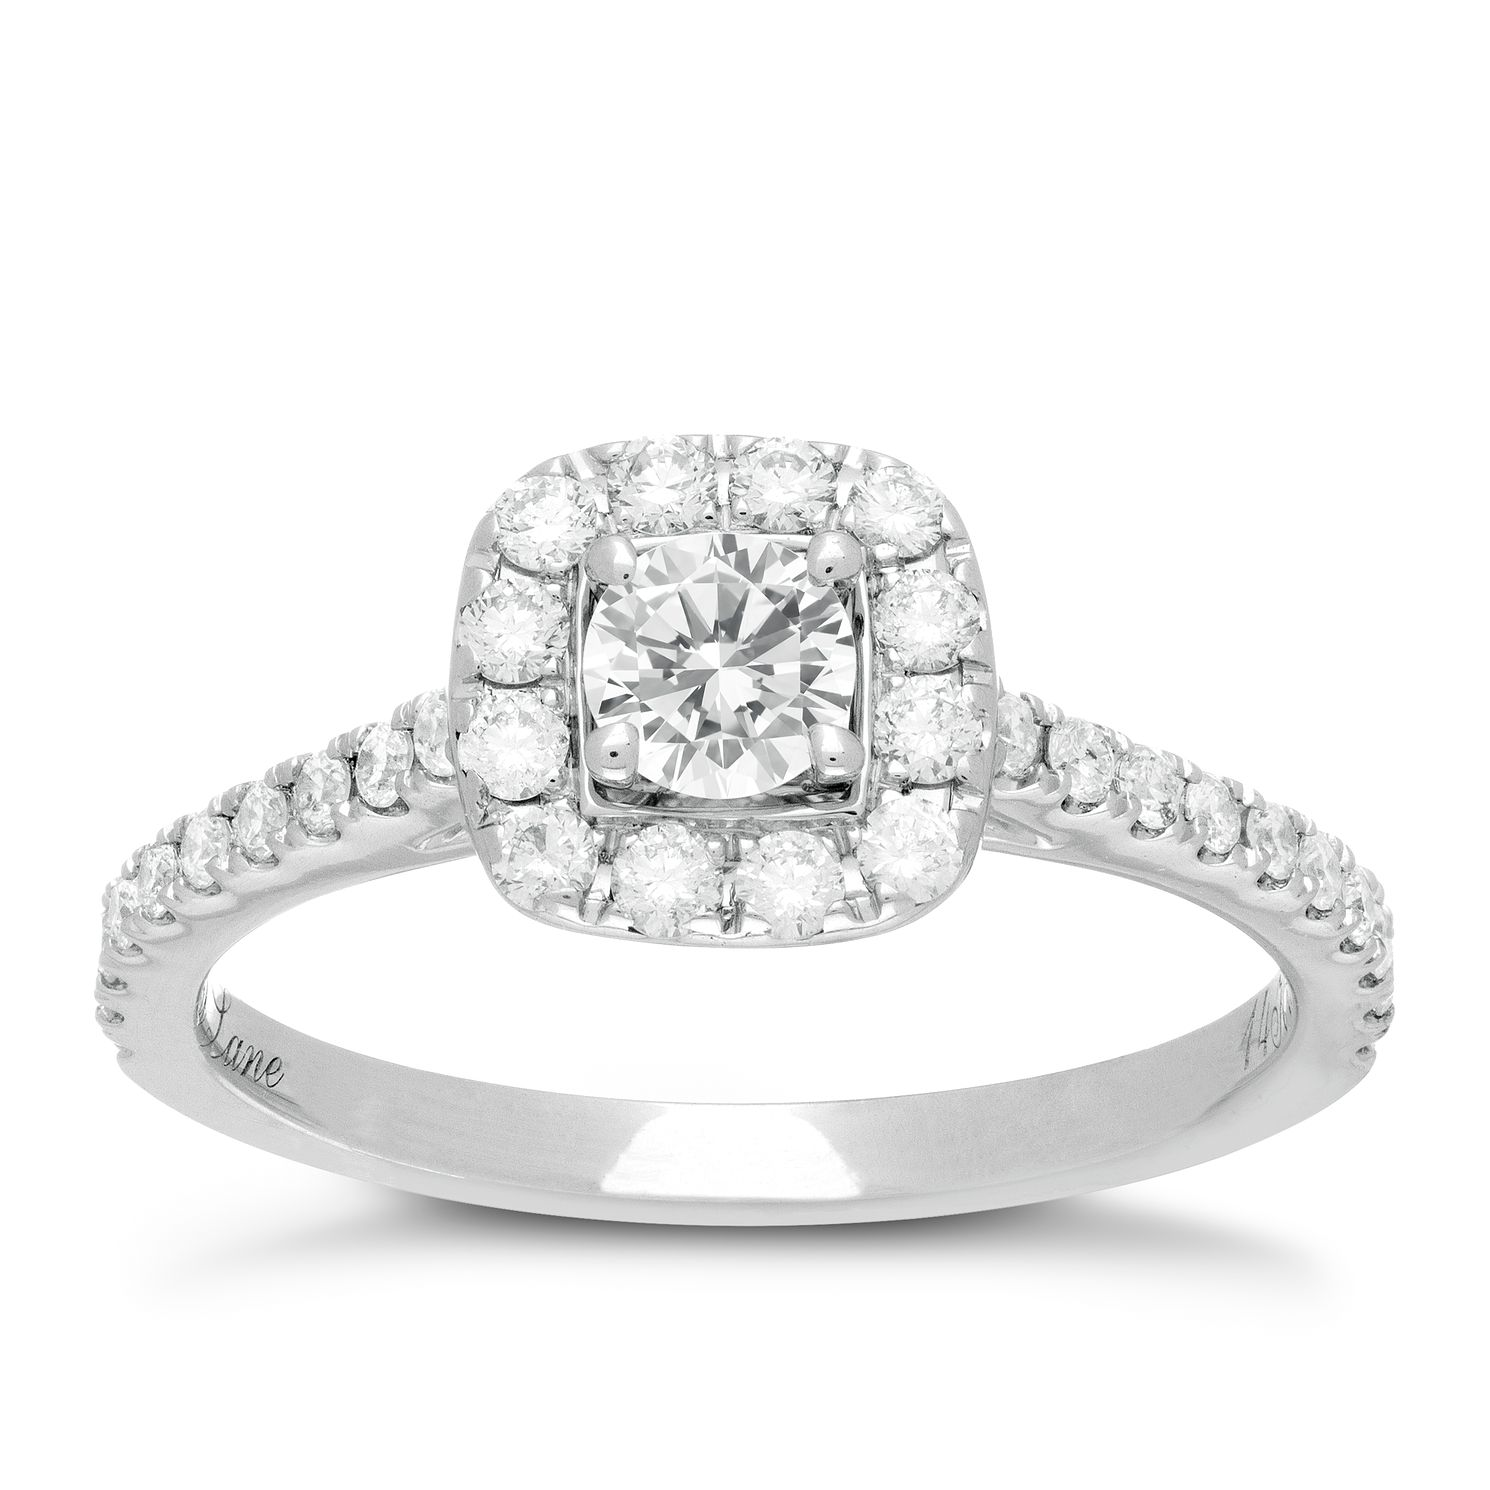 Neil Lane 14ct White Gold 0.75ct Diamond Halo Ring   Product Number 1349430